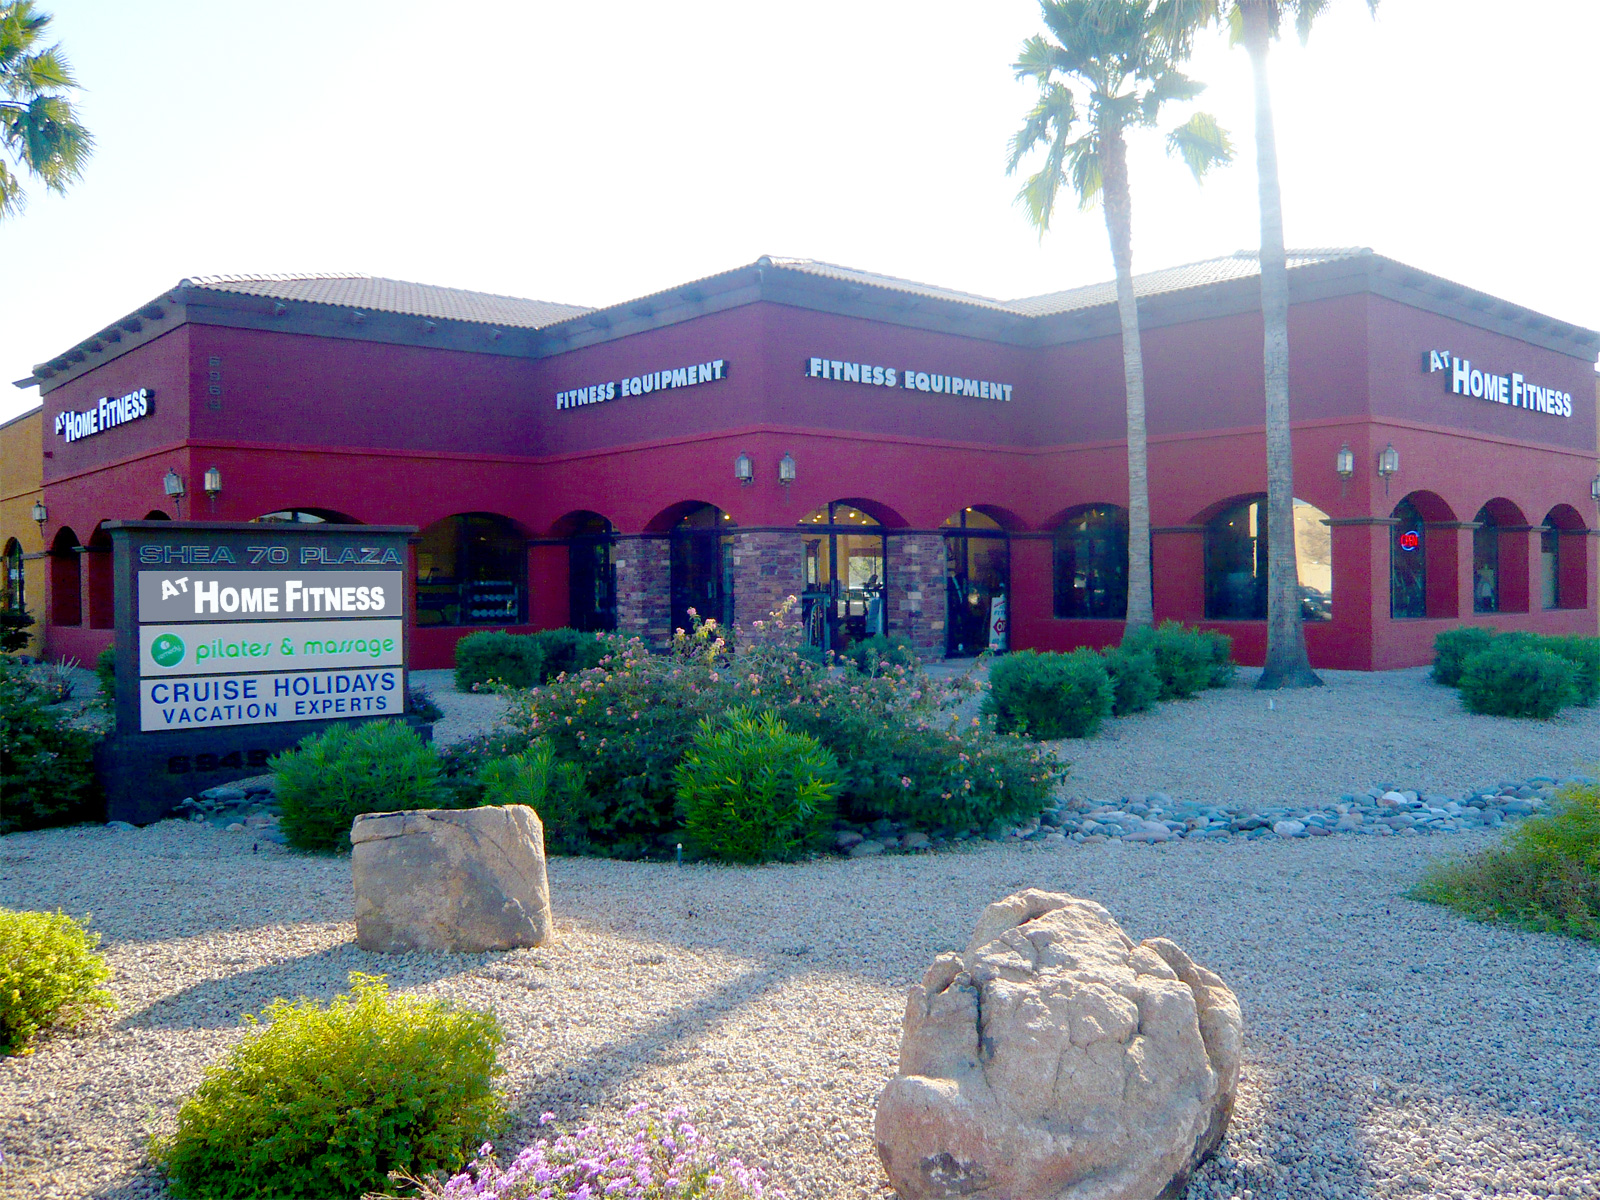 At Home Fitness Scottsdale